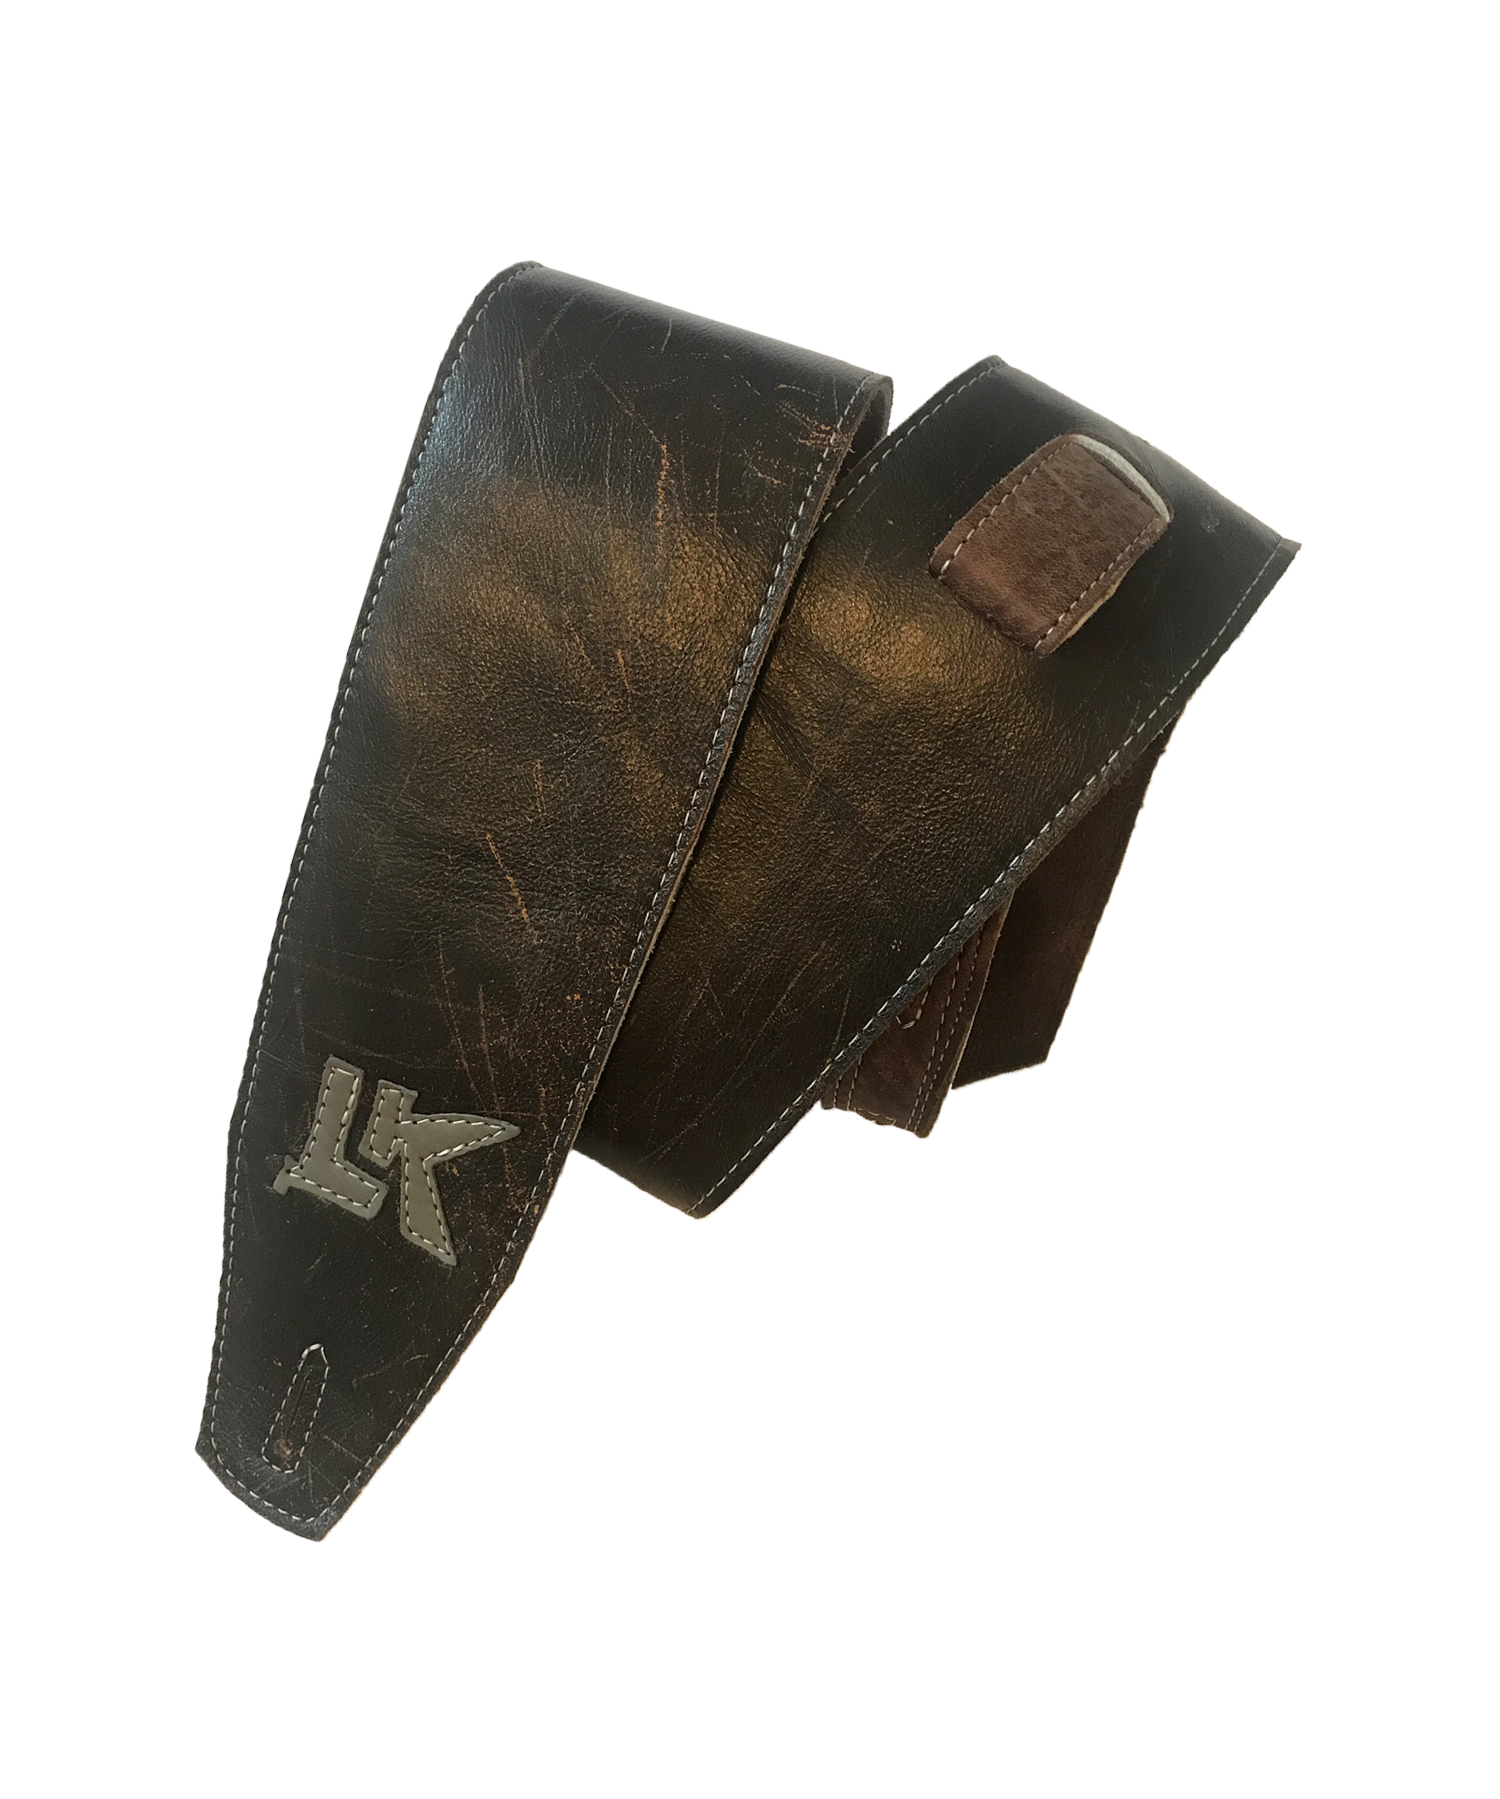 LK Heavy Distorted Dark Brown Strap